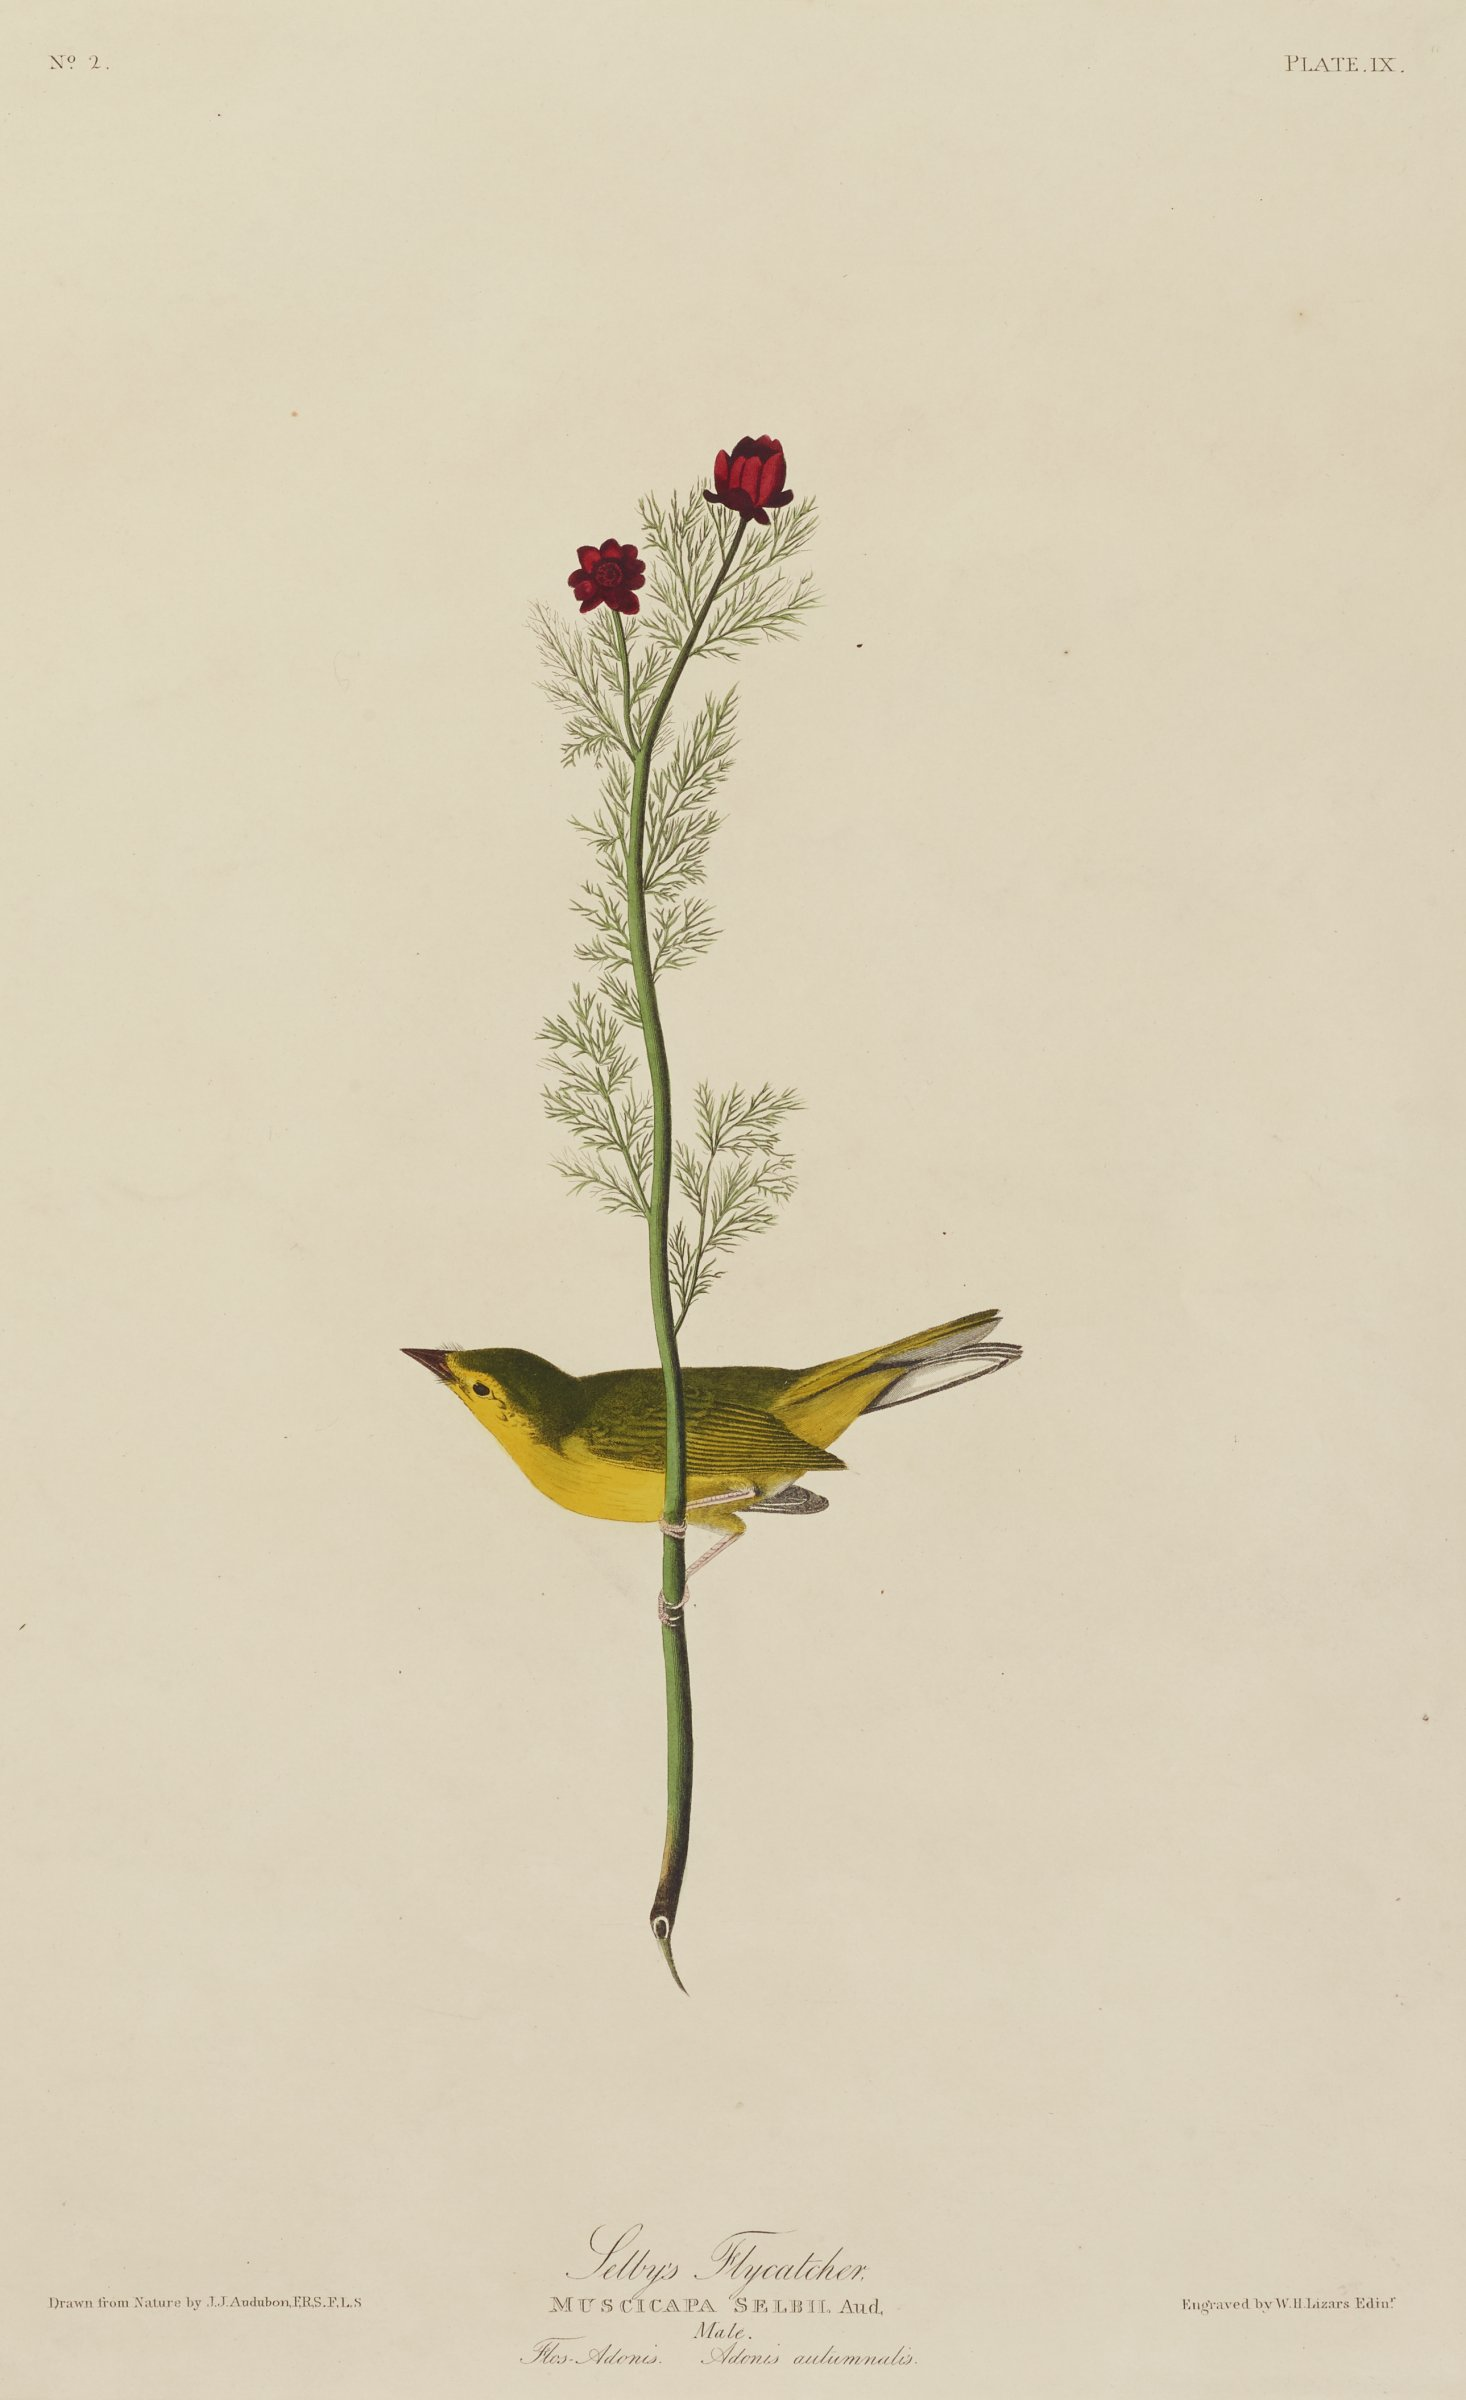 A bird with a black topside and beak, yellow underside, and white tail holds onto a vertically oriented tree branch that blooms with two dark red flowers.